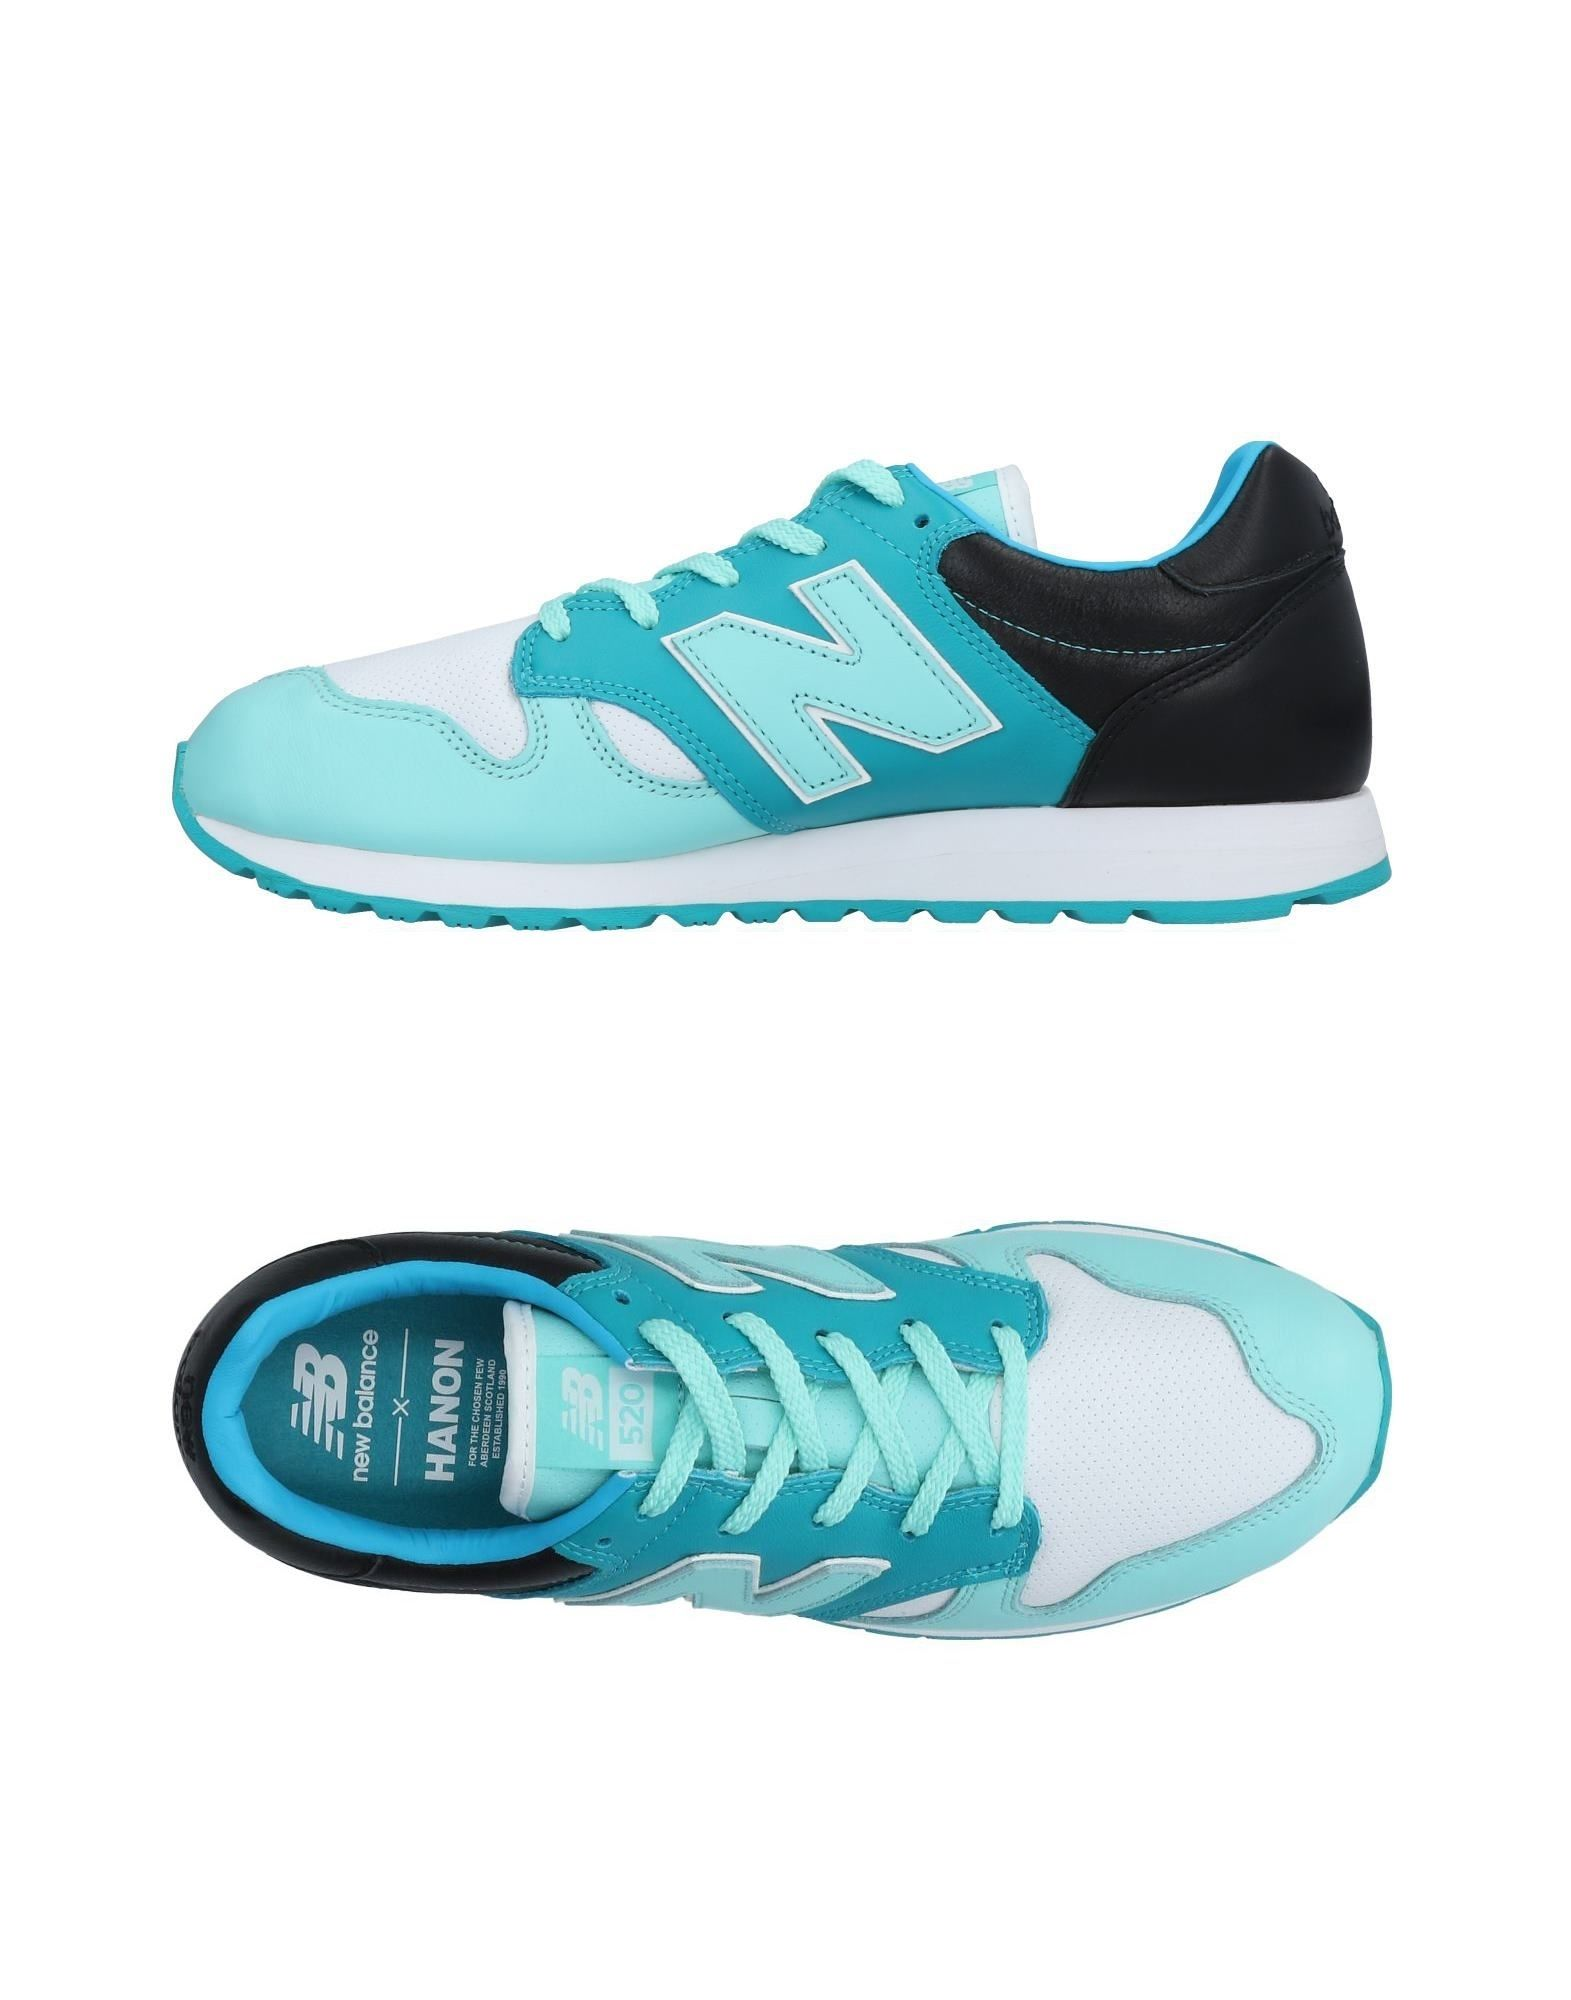 New Balance Sneakers - Men on New Balance Sneakers online on Men  Canada - 11495213AS 8bb619